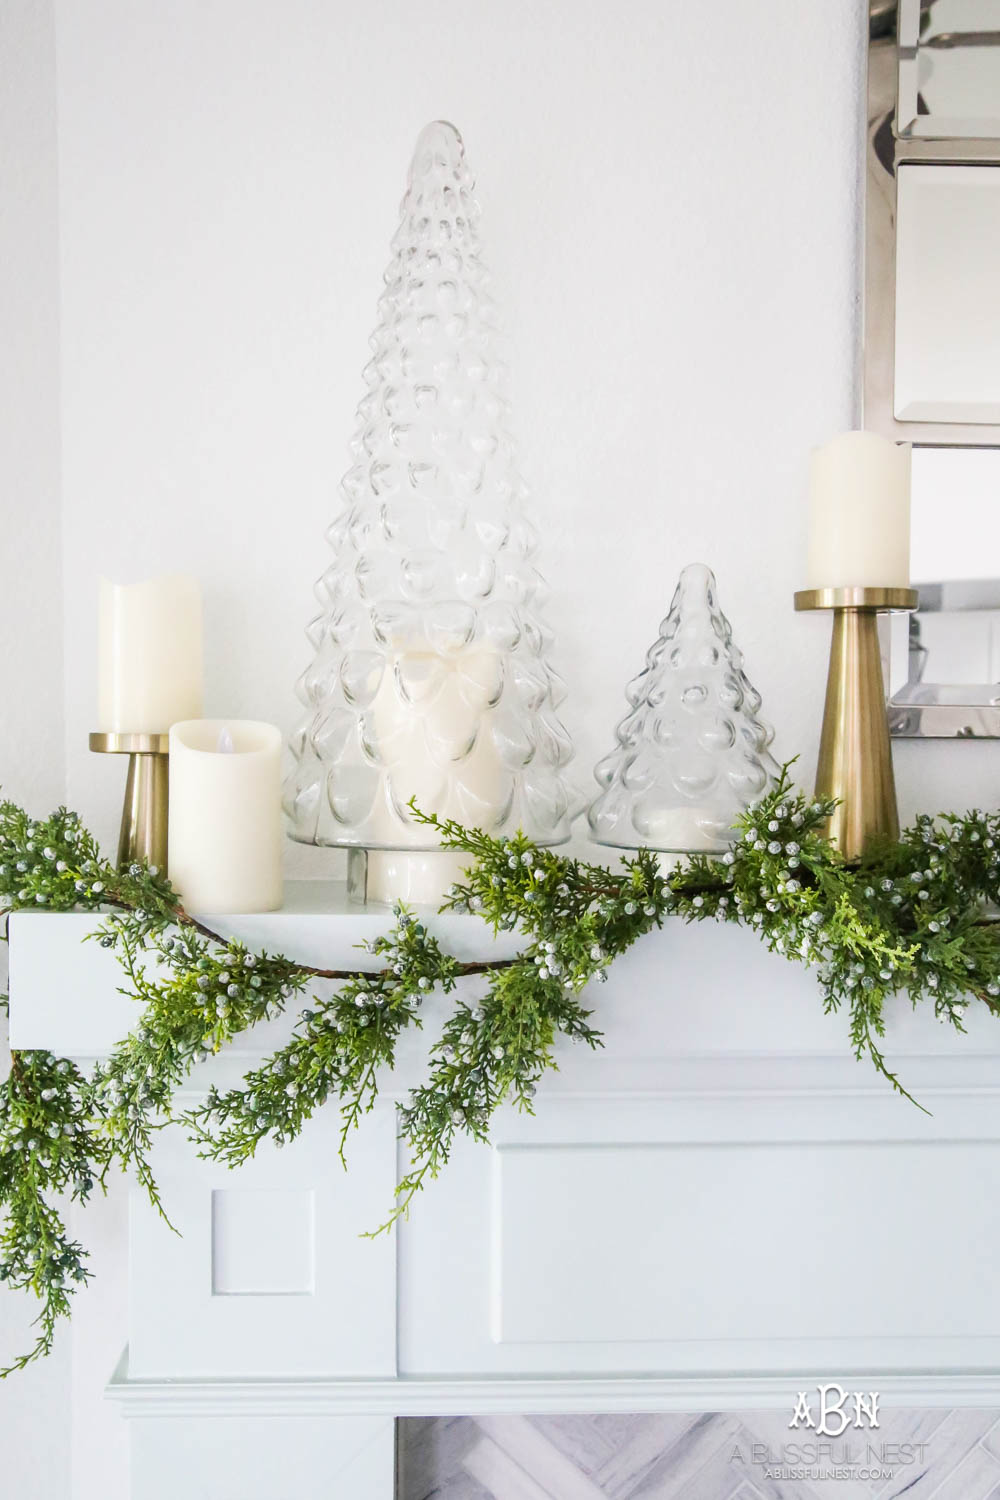 Gorgeous blue and silver Christmas mantle décor with juniper berry garland and glass hurricane Christmas trees. Simple and festive holiday décor in this open concept living space. Check out all the white, silver and gold Christmas decor in this holiday home tour on ABlissfulNest.com. #ABlissfulNest #Christmasdecor #Christmasdecorating #CoastalChristmasdecor #christmastree #christmasmantle